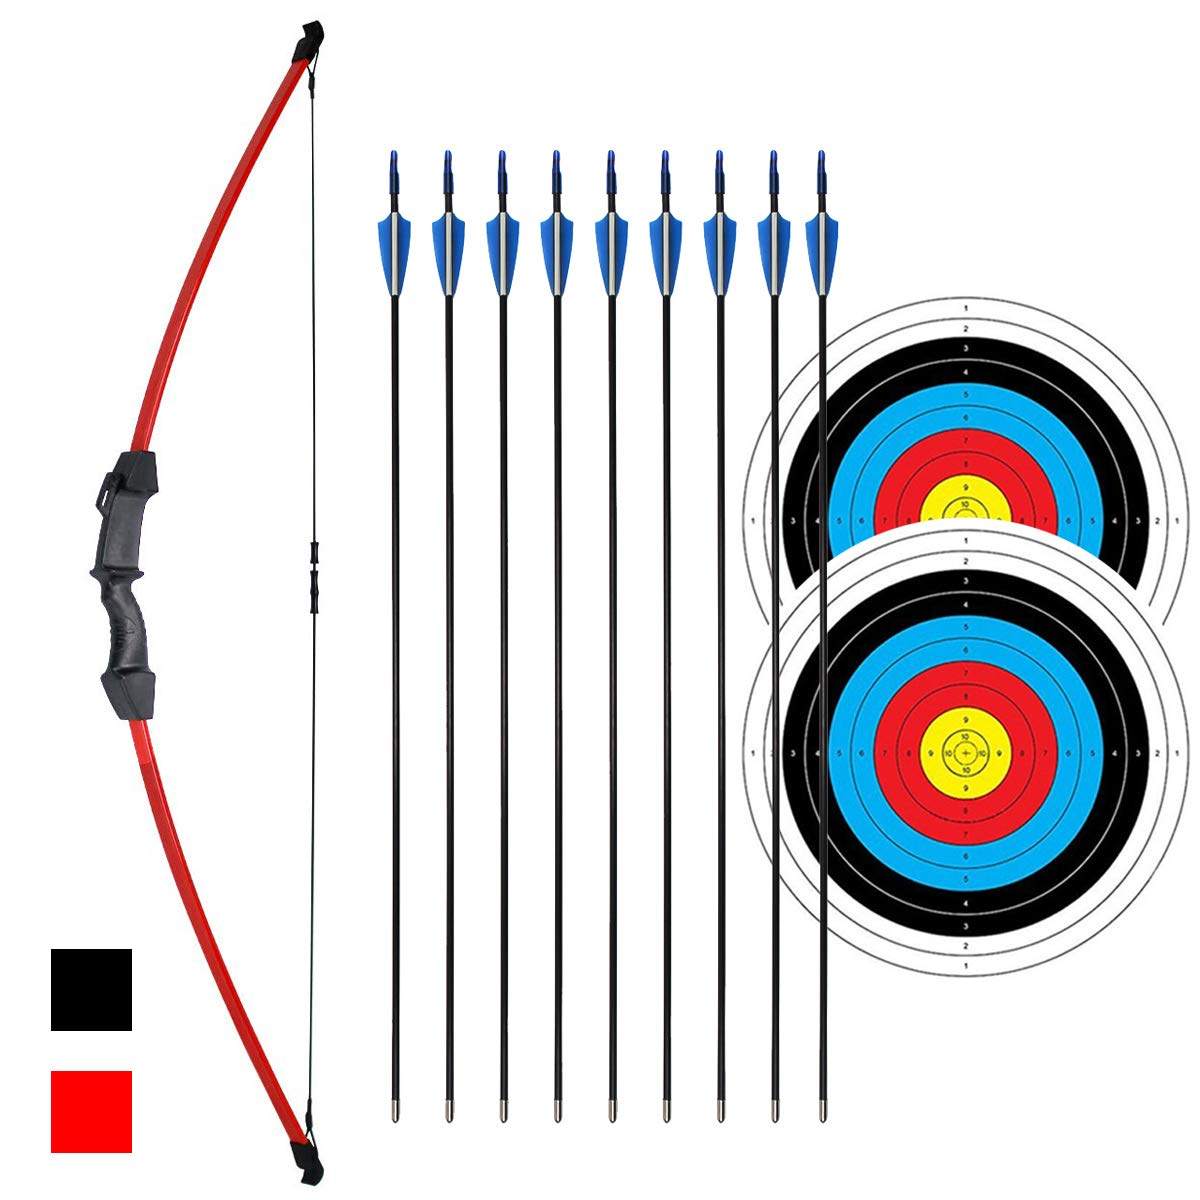 iMay 45'' Bow and Arrows Set with 9 Arrows 2 Target Faces for Teens Outdoor Archery Beginner Gift Recurve Bow Longbow Kit (Red)